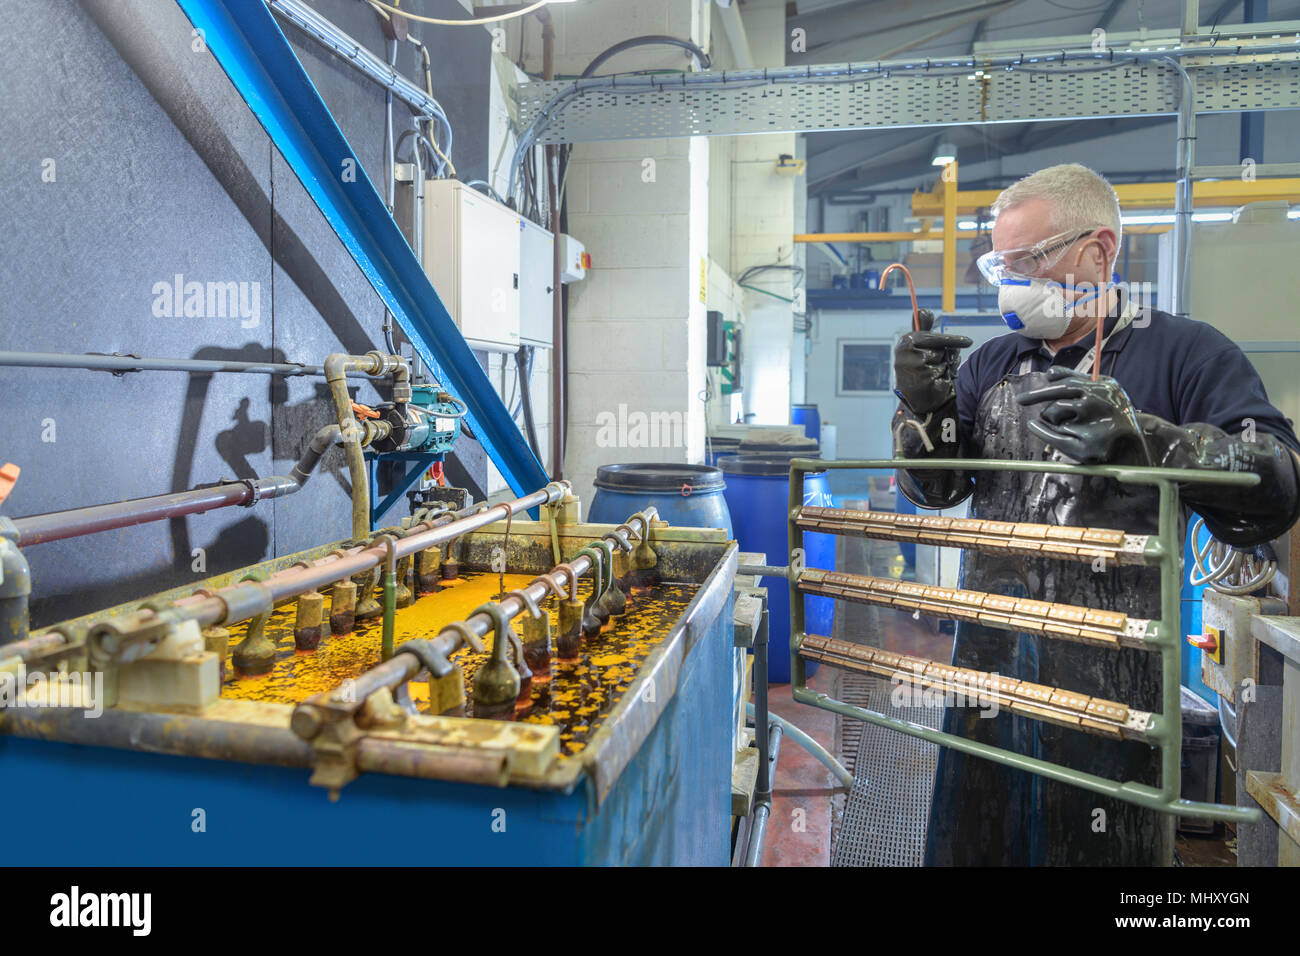 Worker placing components into chromium plating bath in electroplating factory - Stock Image